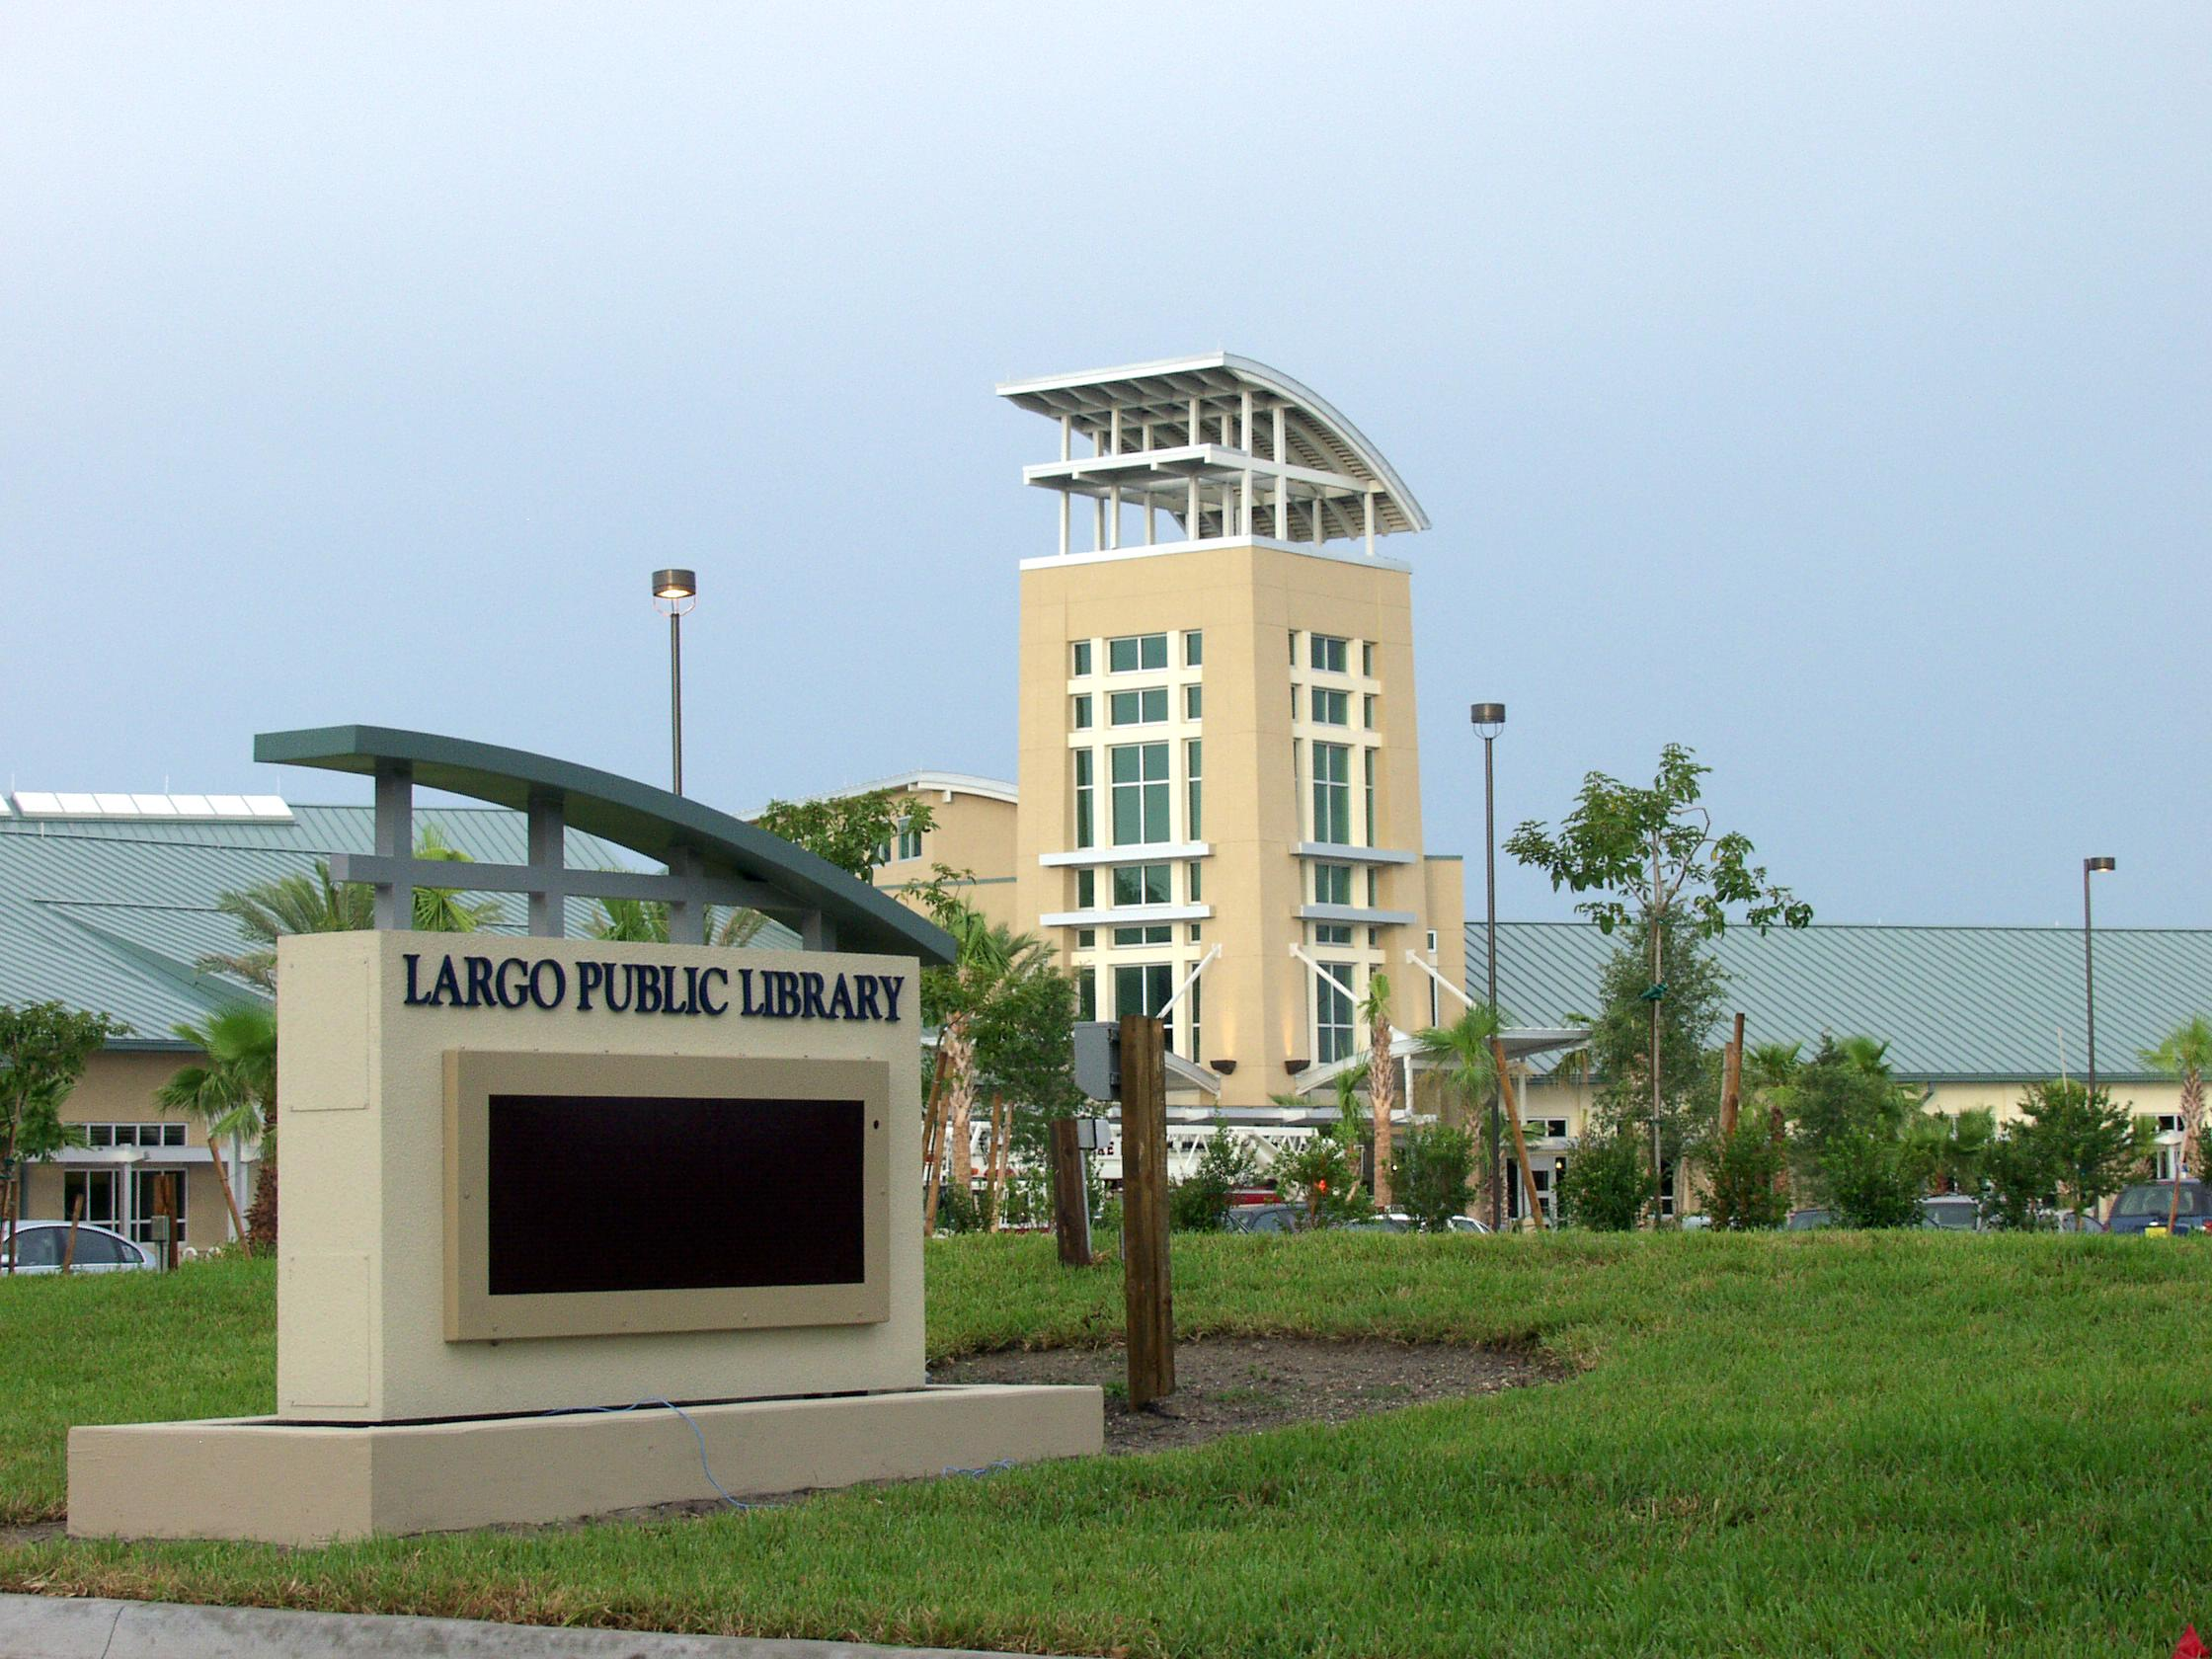 The Public Library in Largo Florida